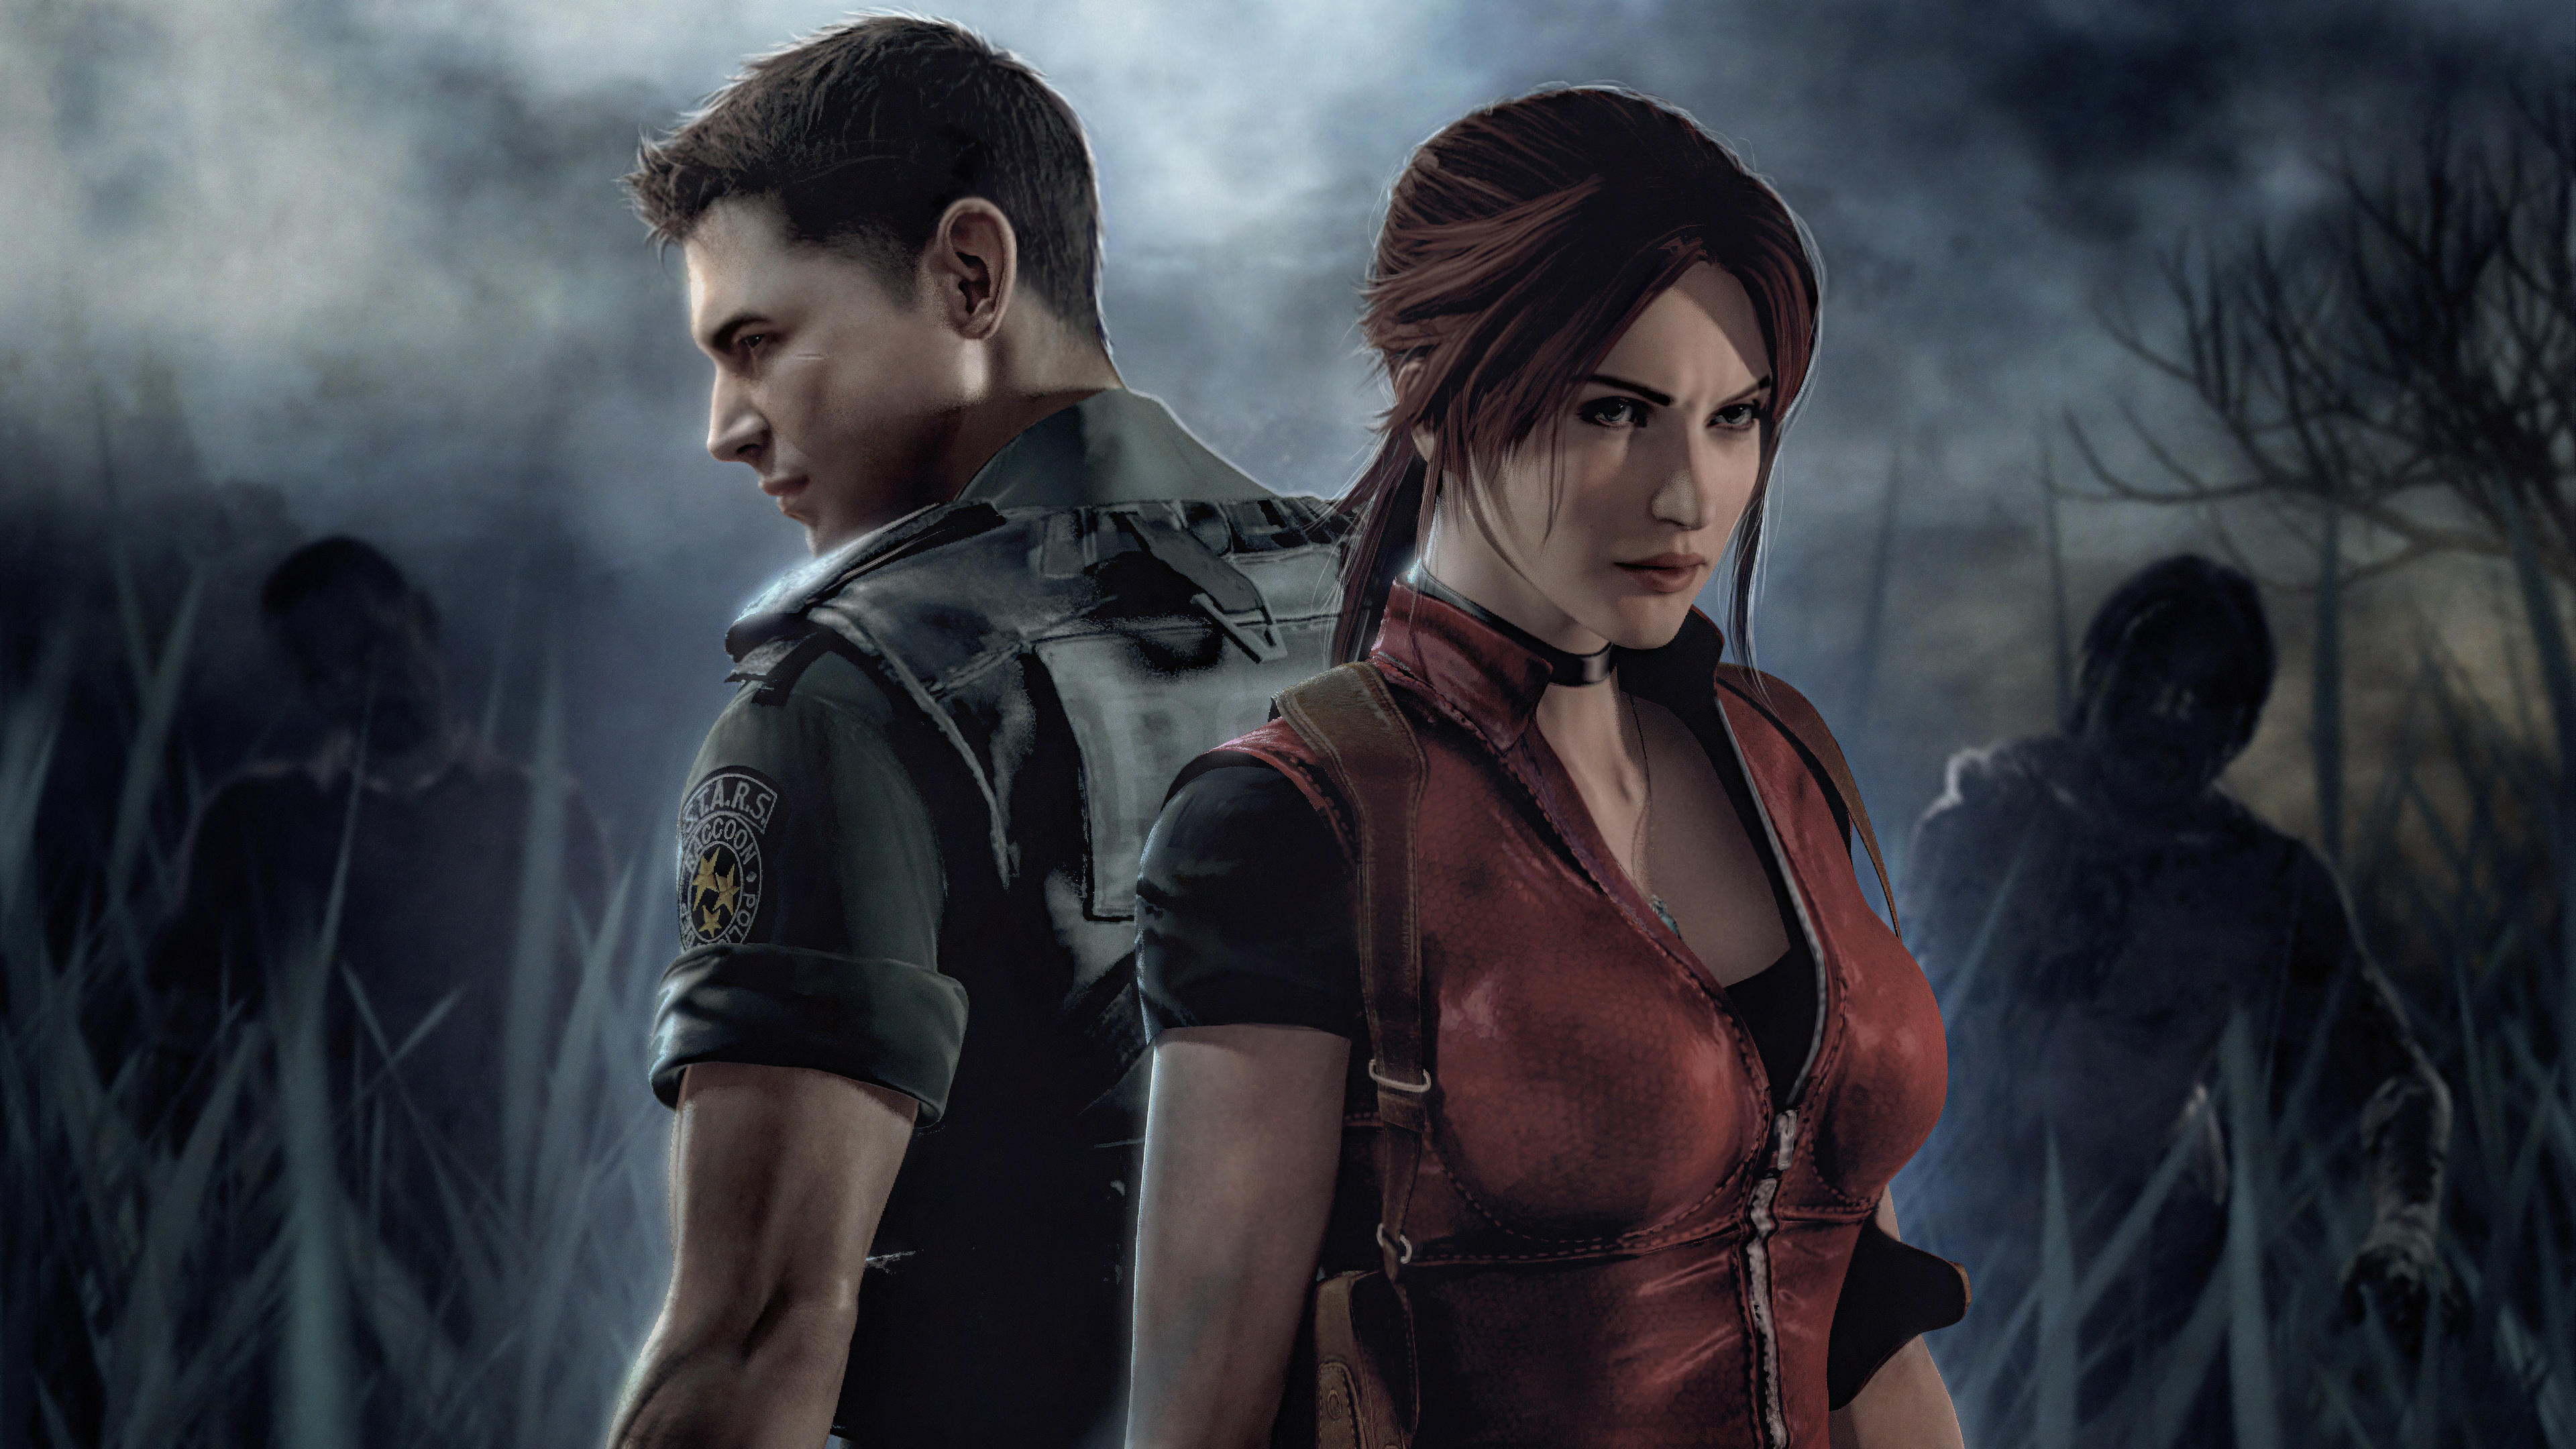 claire redfield and leon resident evil 1563221603 - Claire Redfield And Leon Resident Evil - resident evil 2 wallpapers, leon kennedy wallpapers, hd-wallpapers, games wallpapers, claire redfield wallpapers, 4k-wallpapers, 2019 games wallpapers